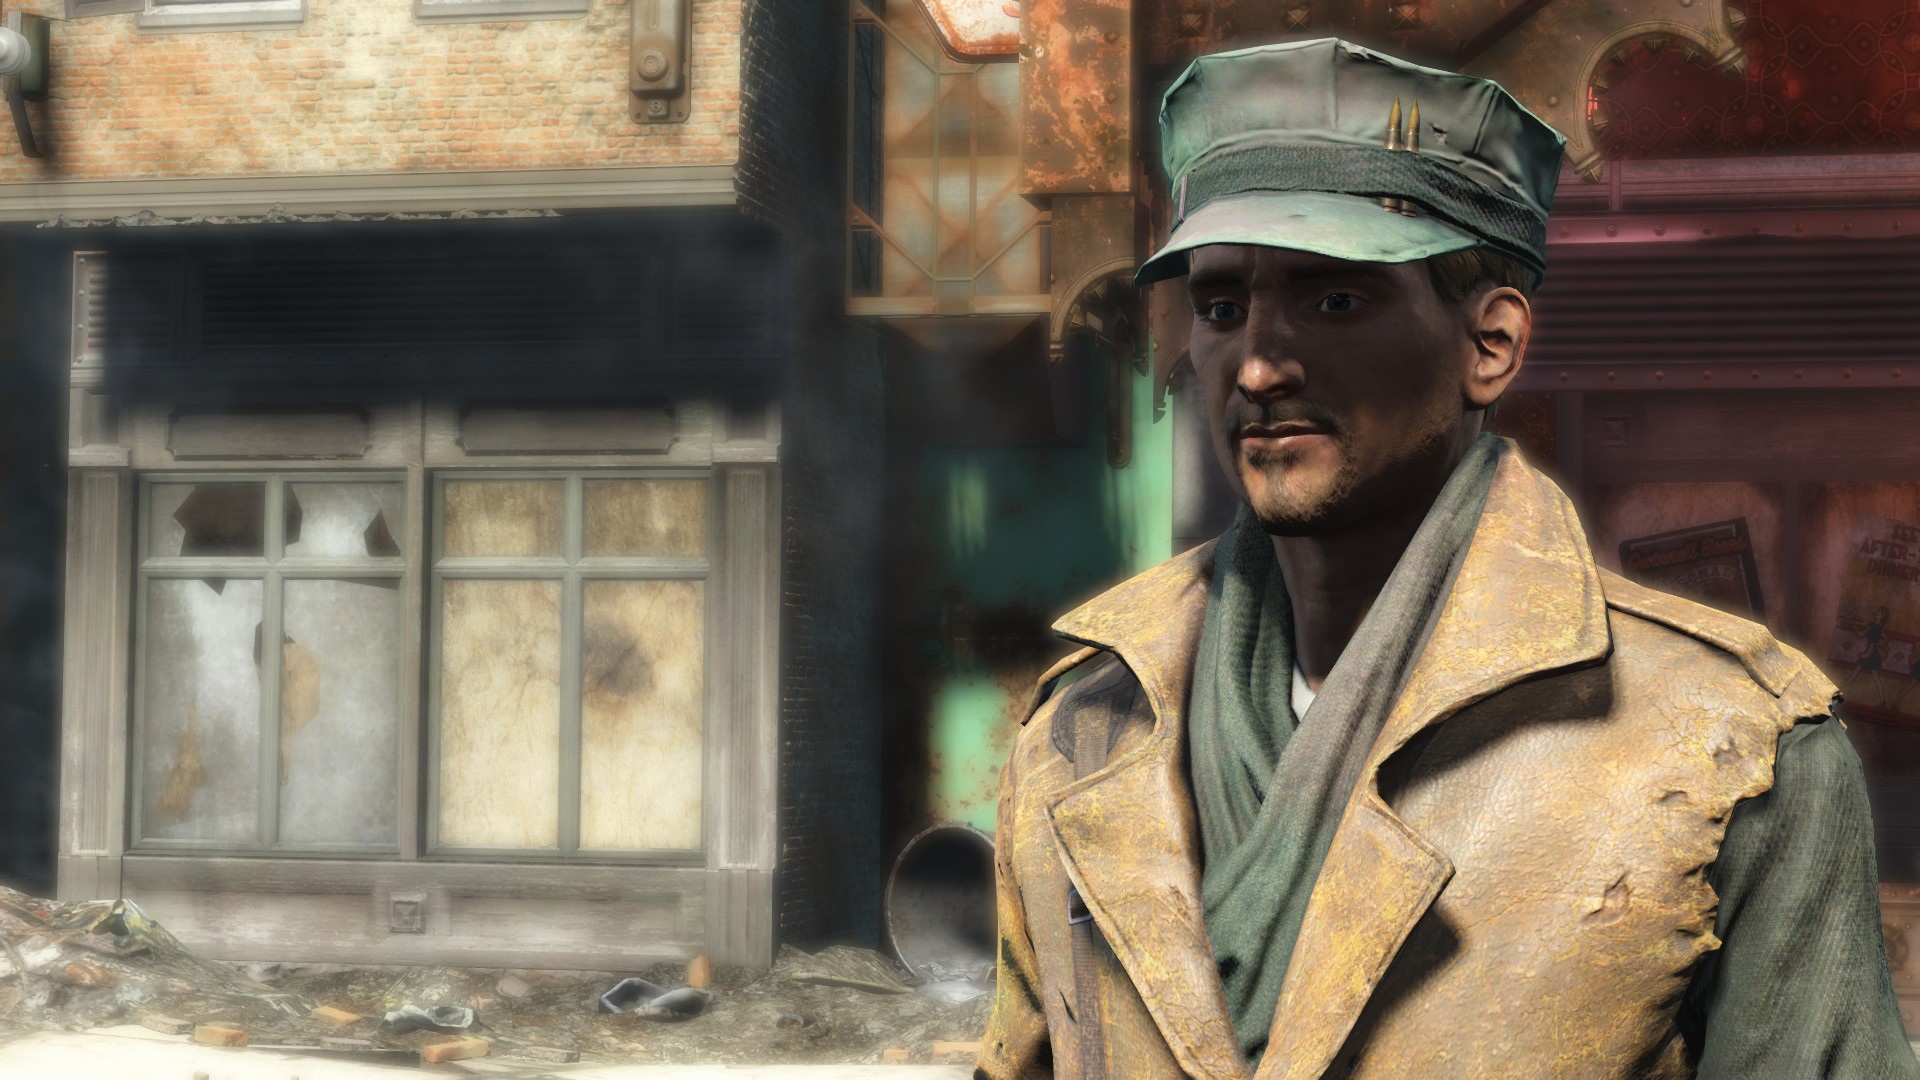 Robert Joseph MacCready | Fallout Wiki | FANDOM powered by Wikia